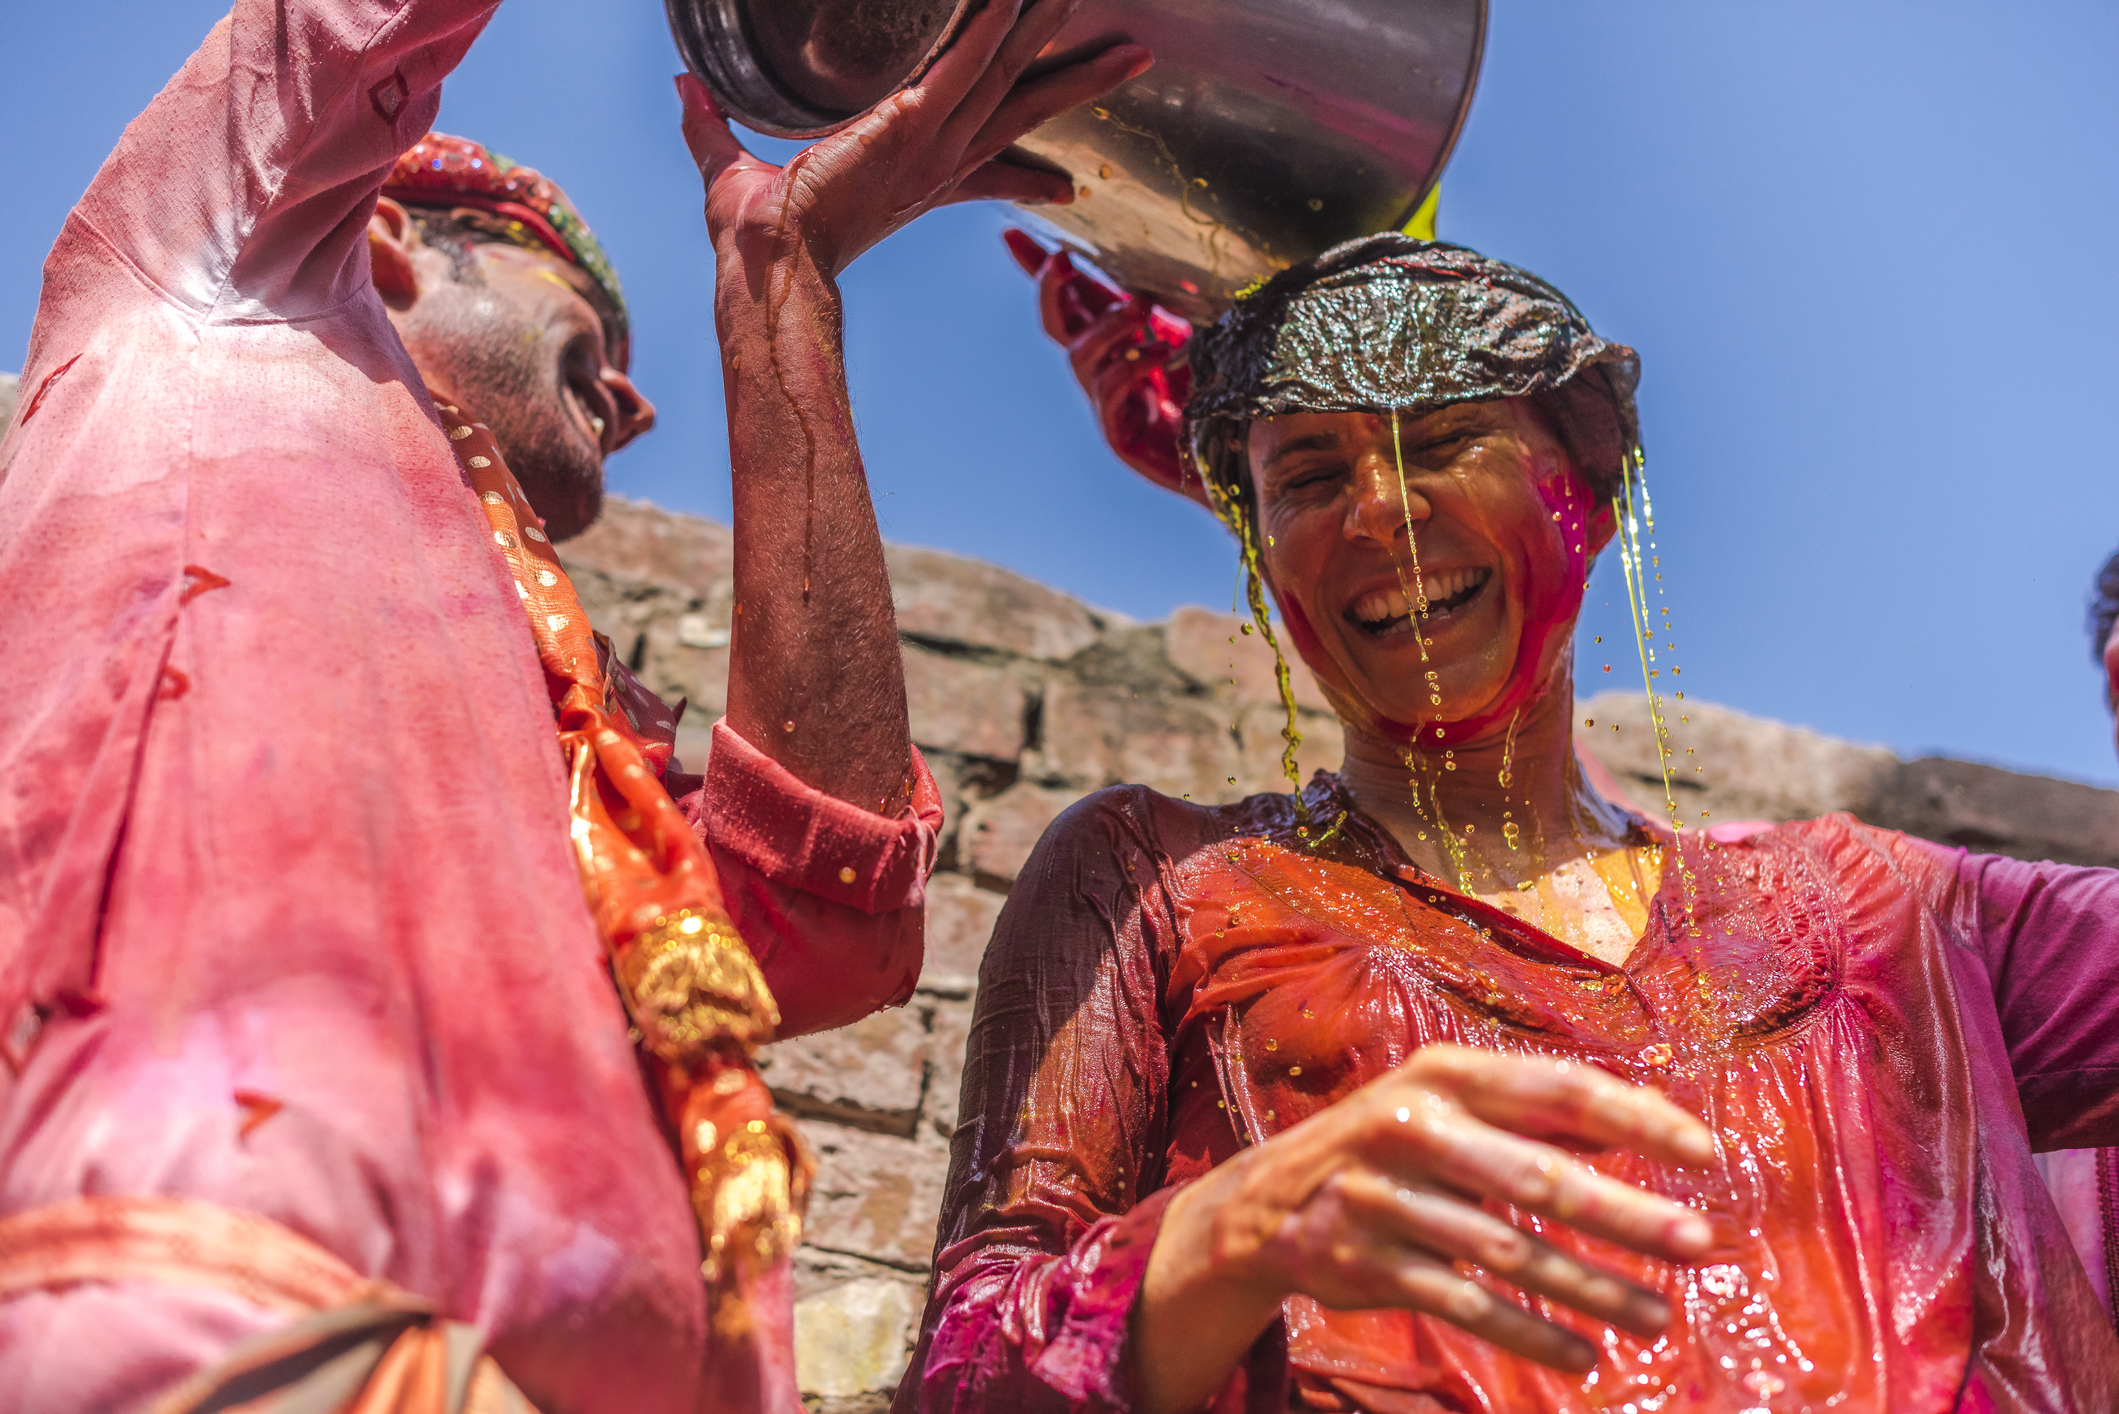 Barsana, India - February 28, 2015: Villagers of barsana celebrating holi festival full of water colours with foreign tourists at village barsana, Uttar Pradesh, India.